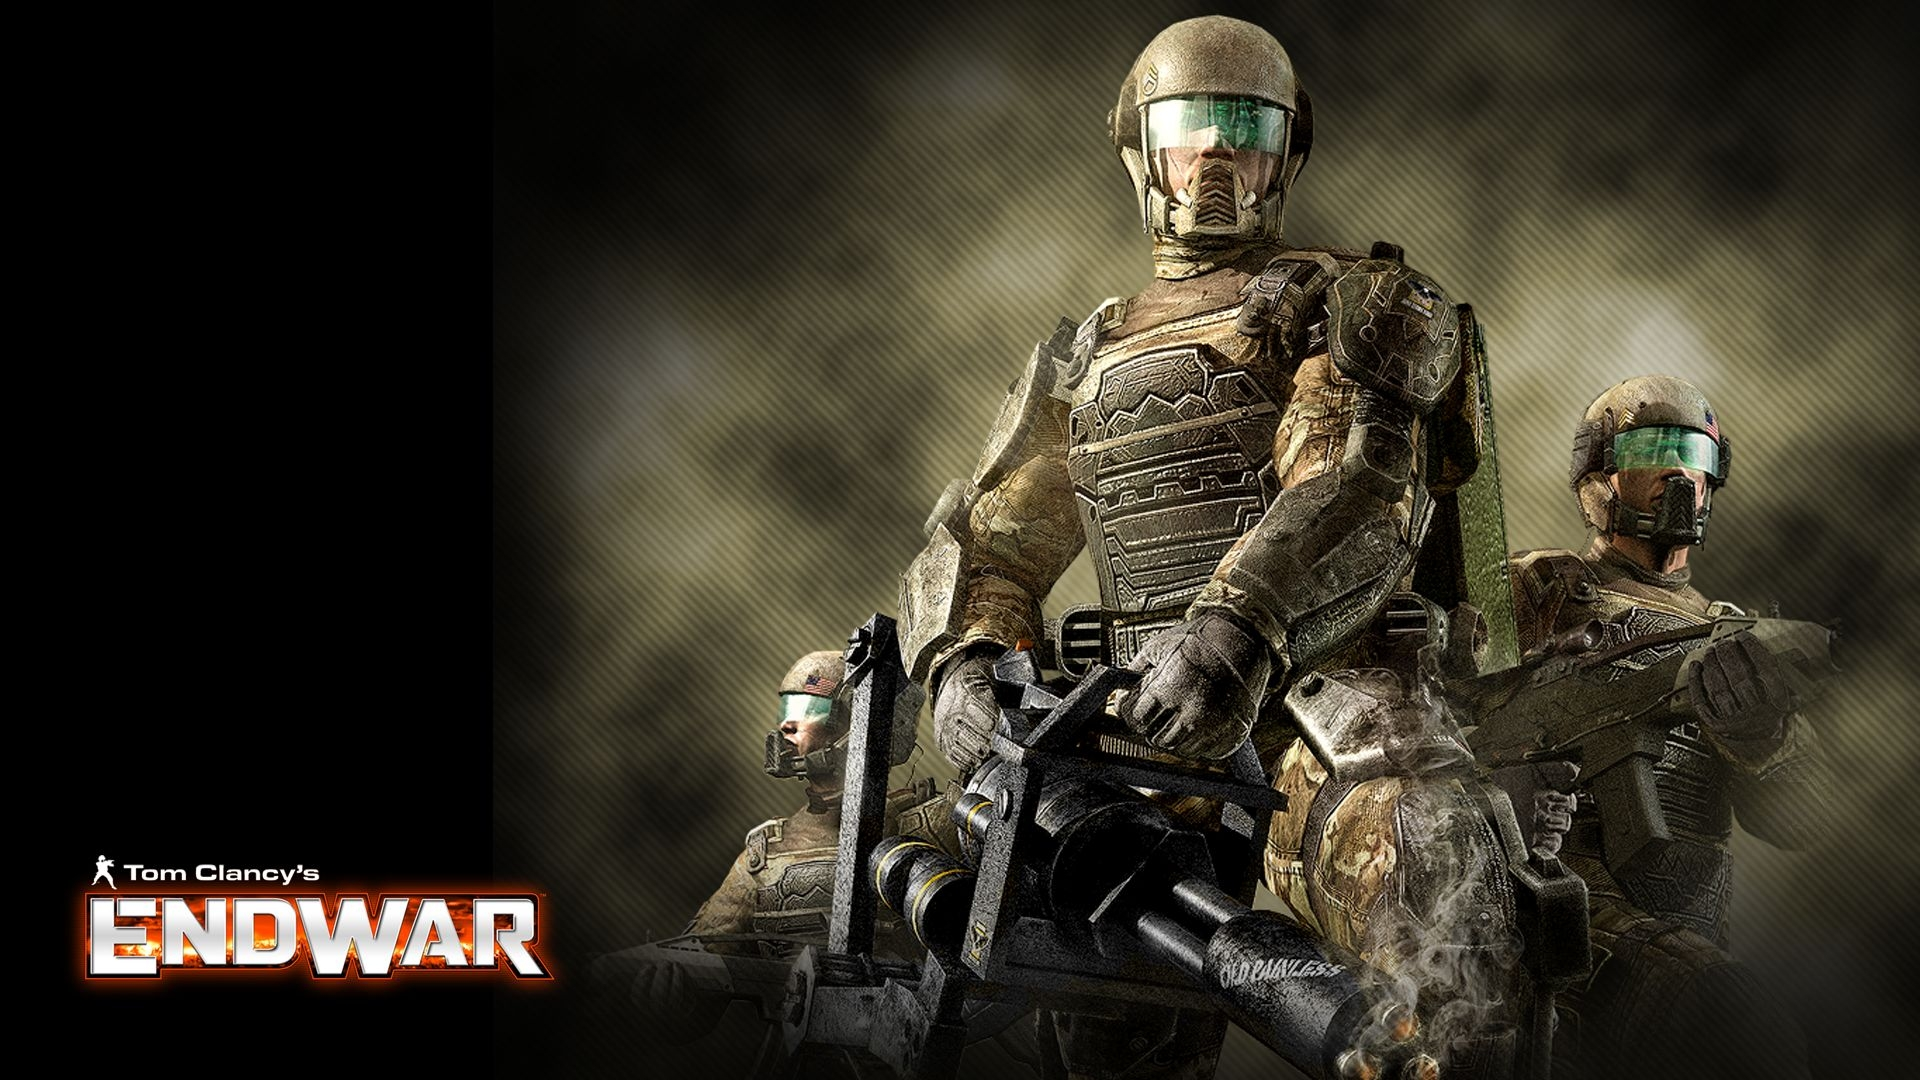 Tom Clancys EndWar HD Wallpapers and Background Images   stmednet 1920x1080